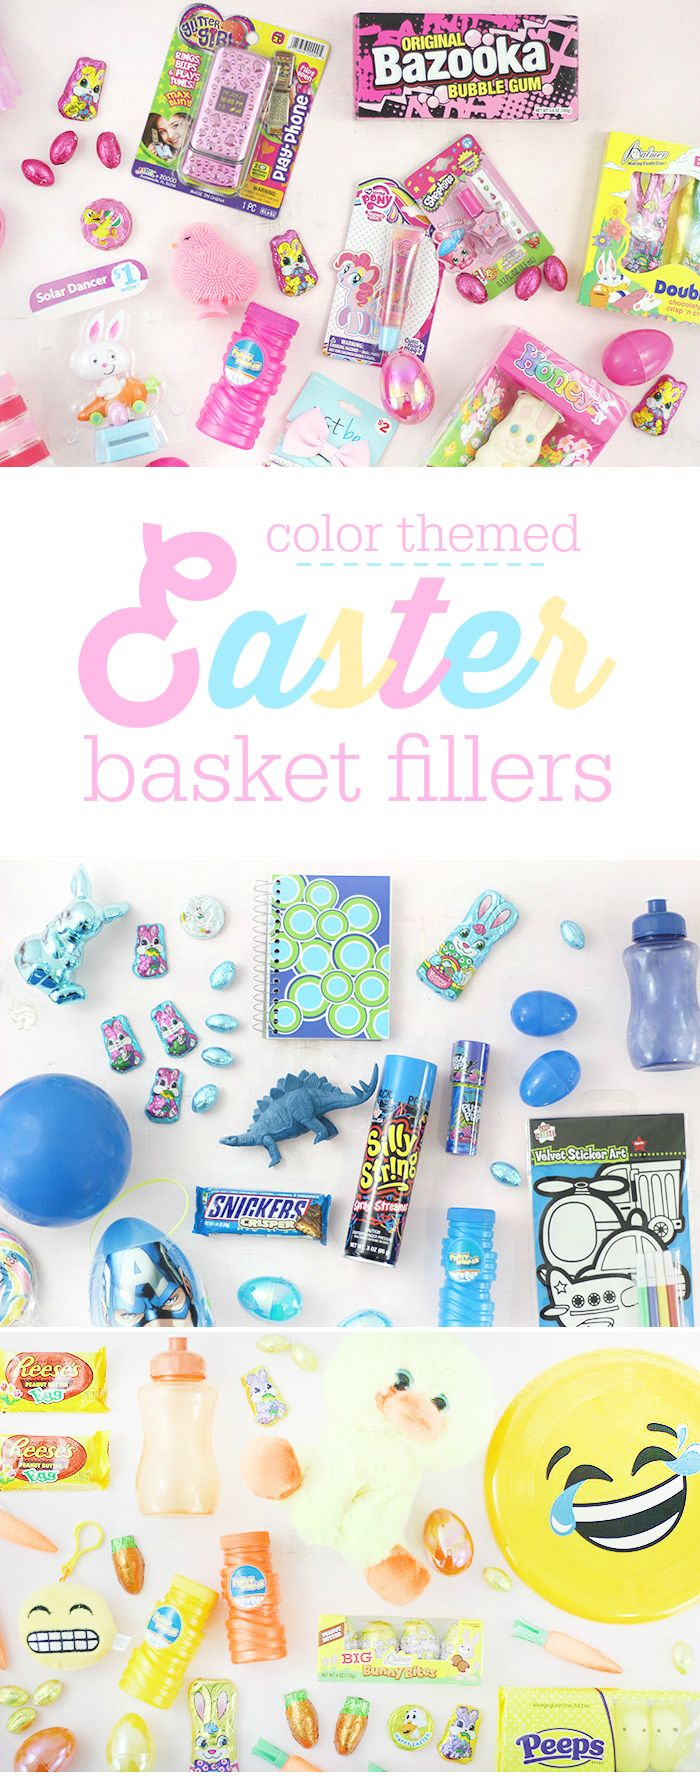 Color themed easter basket fillers pink blue yellow orange for pink blue yellow orange for the perfect baskets budget friendly options available at family dollar negle Gallery